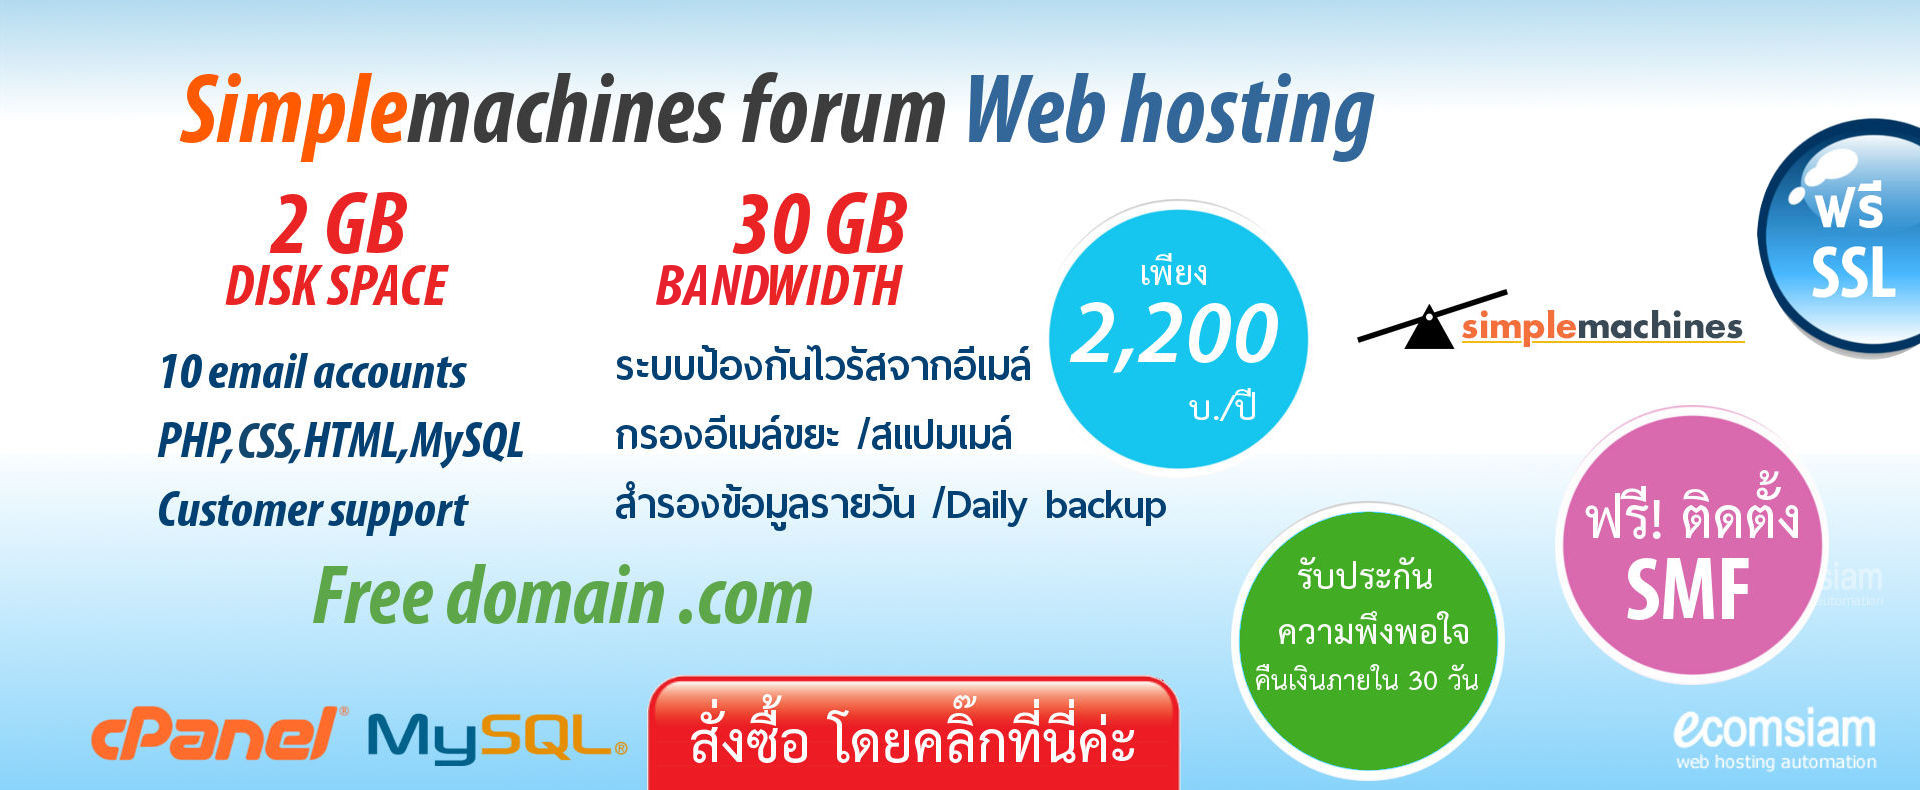 smf : simple machines forum web hosting thailand -เว็บโฮสติ้ง ฟรีโดเมนเนม - web-hosting-thailand-free domain-smf : simple machines forum web hosting-banner